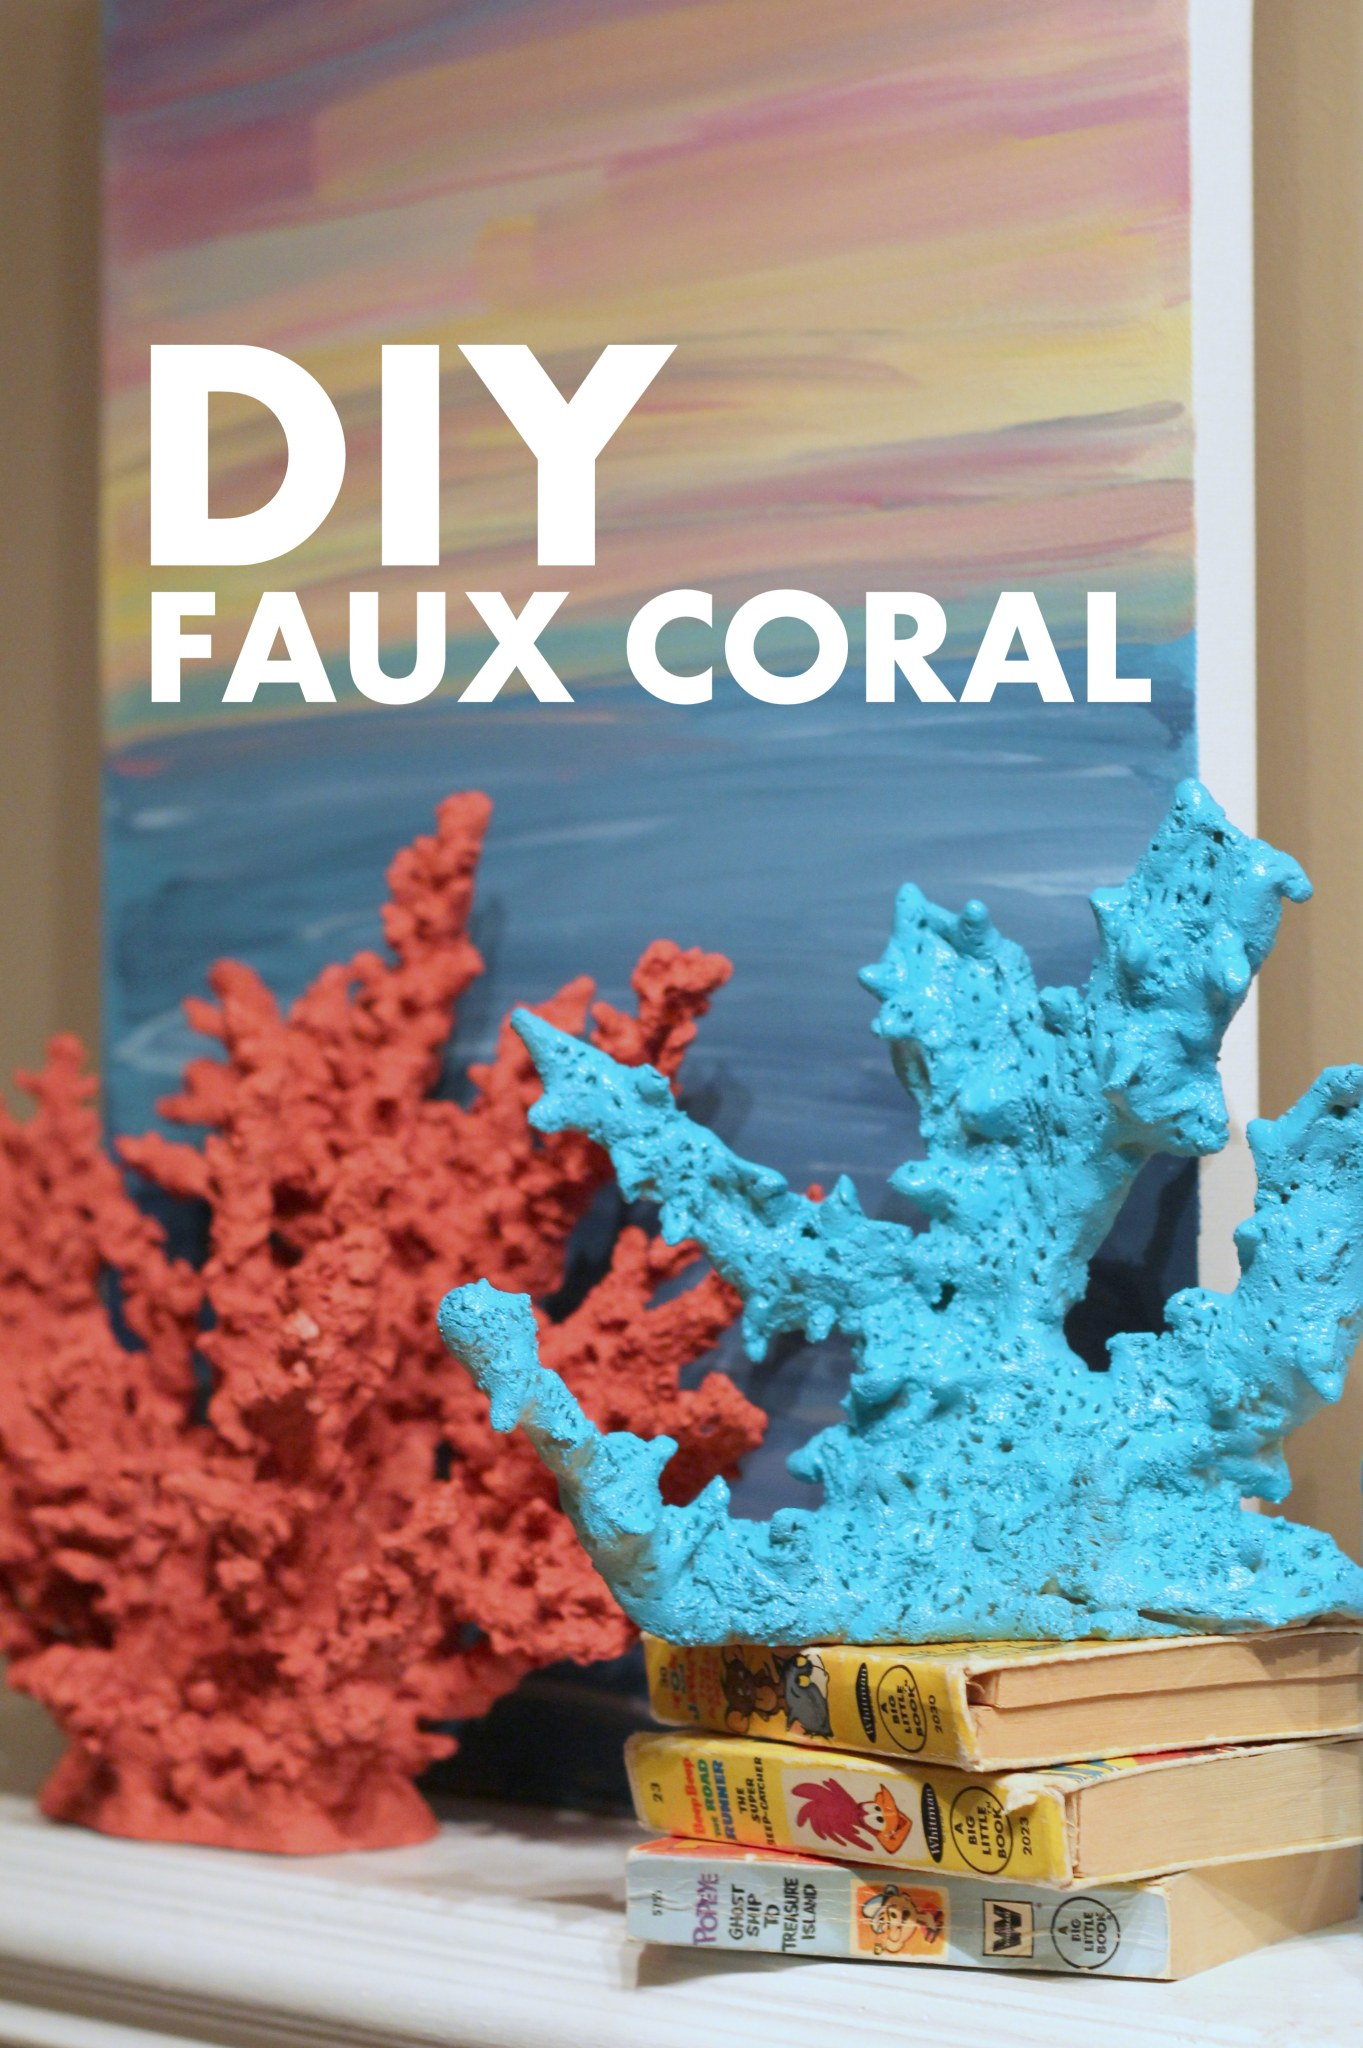 Diy faux coral tutorial for West to best items ideas